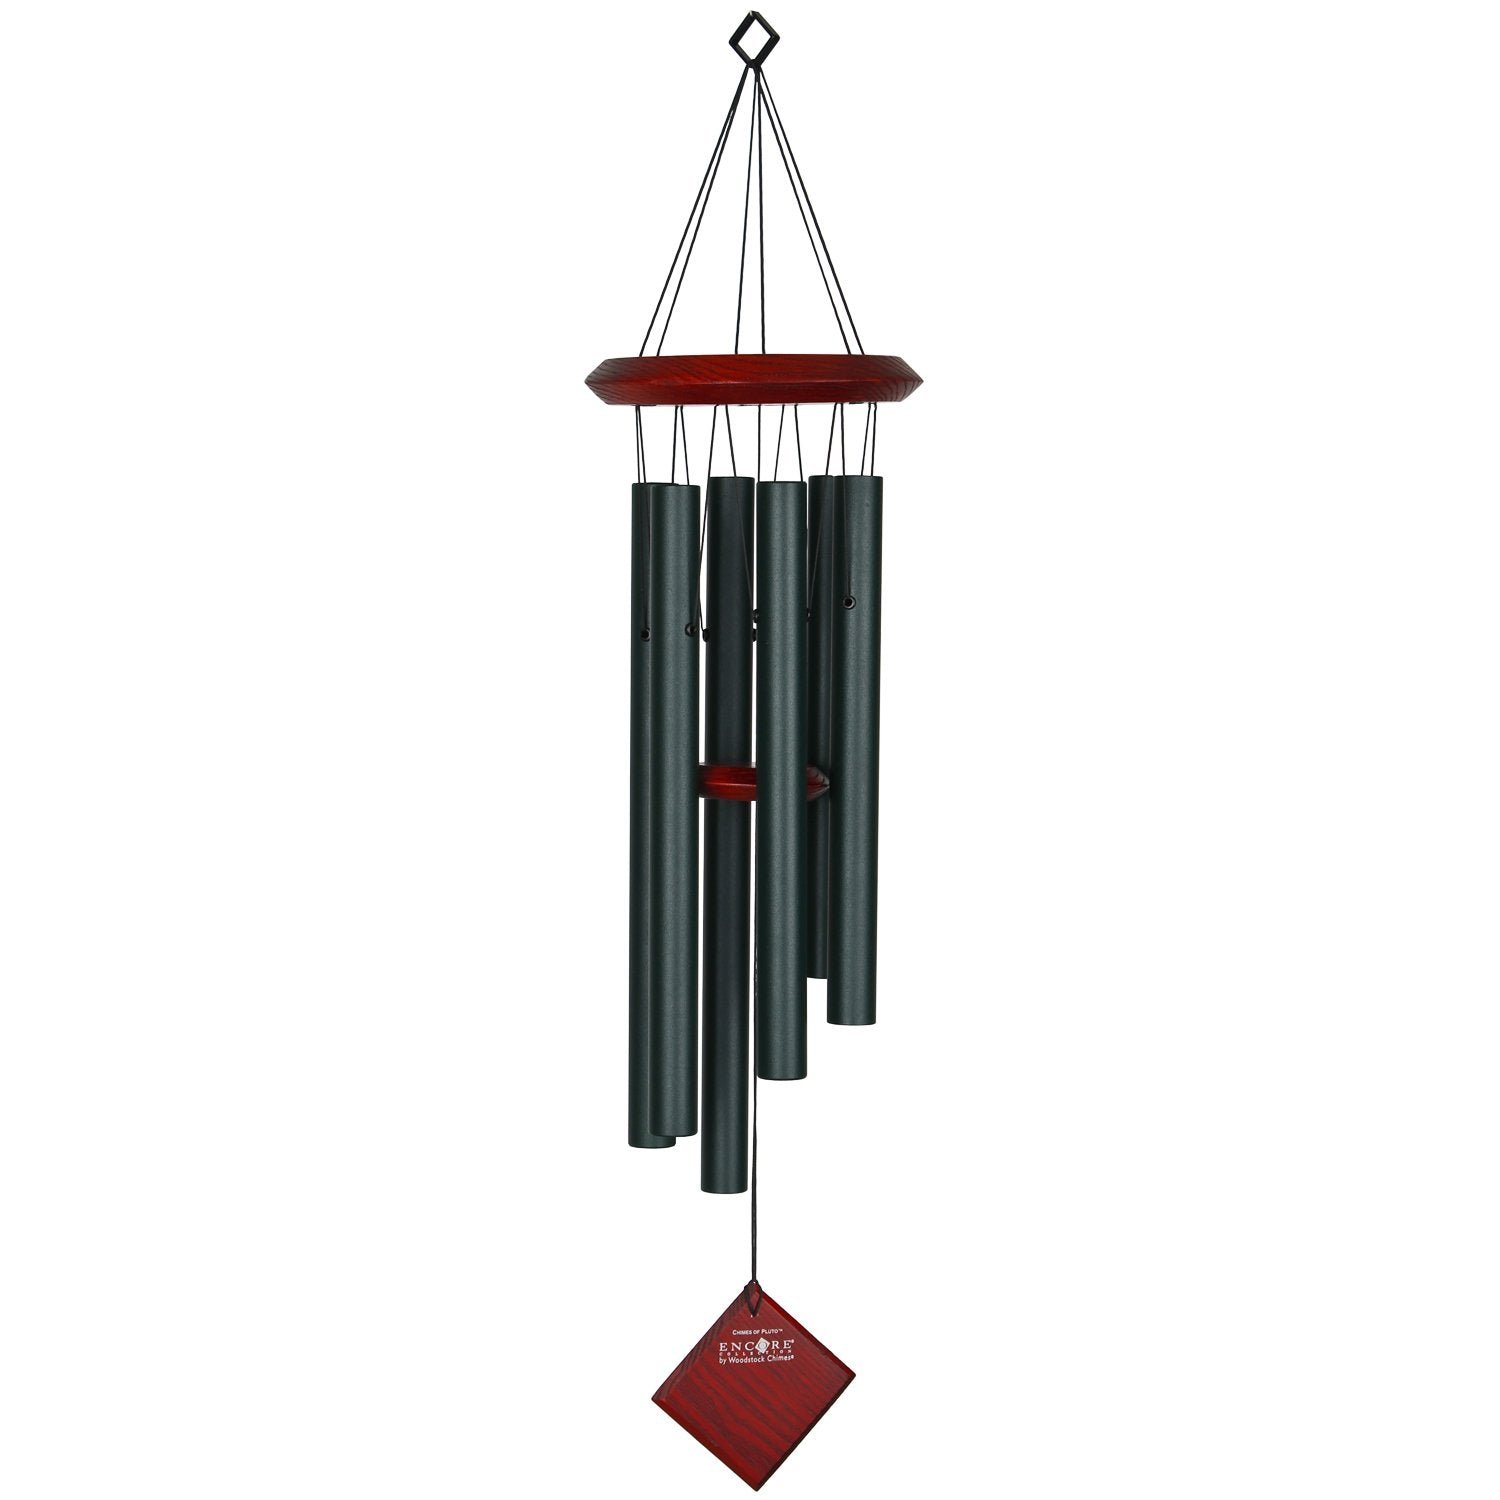 Encore Chimes of Pluto - Evergreen full product image